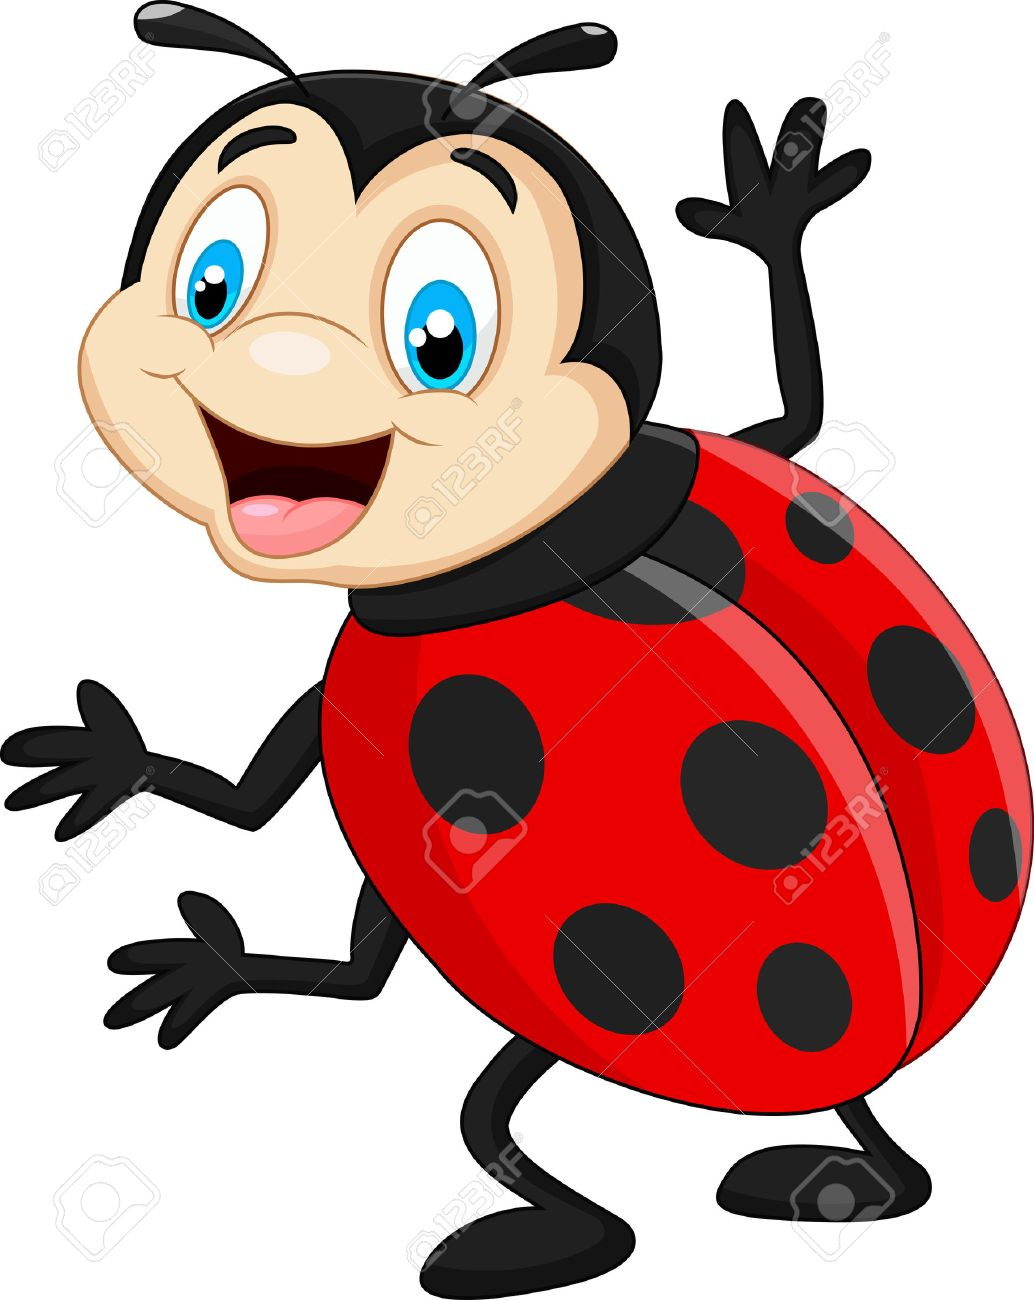 Cartoon Coccinelle Agitant Clip Art Libres De Droits , Vecteurs Et ...